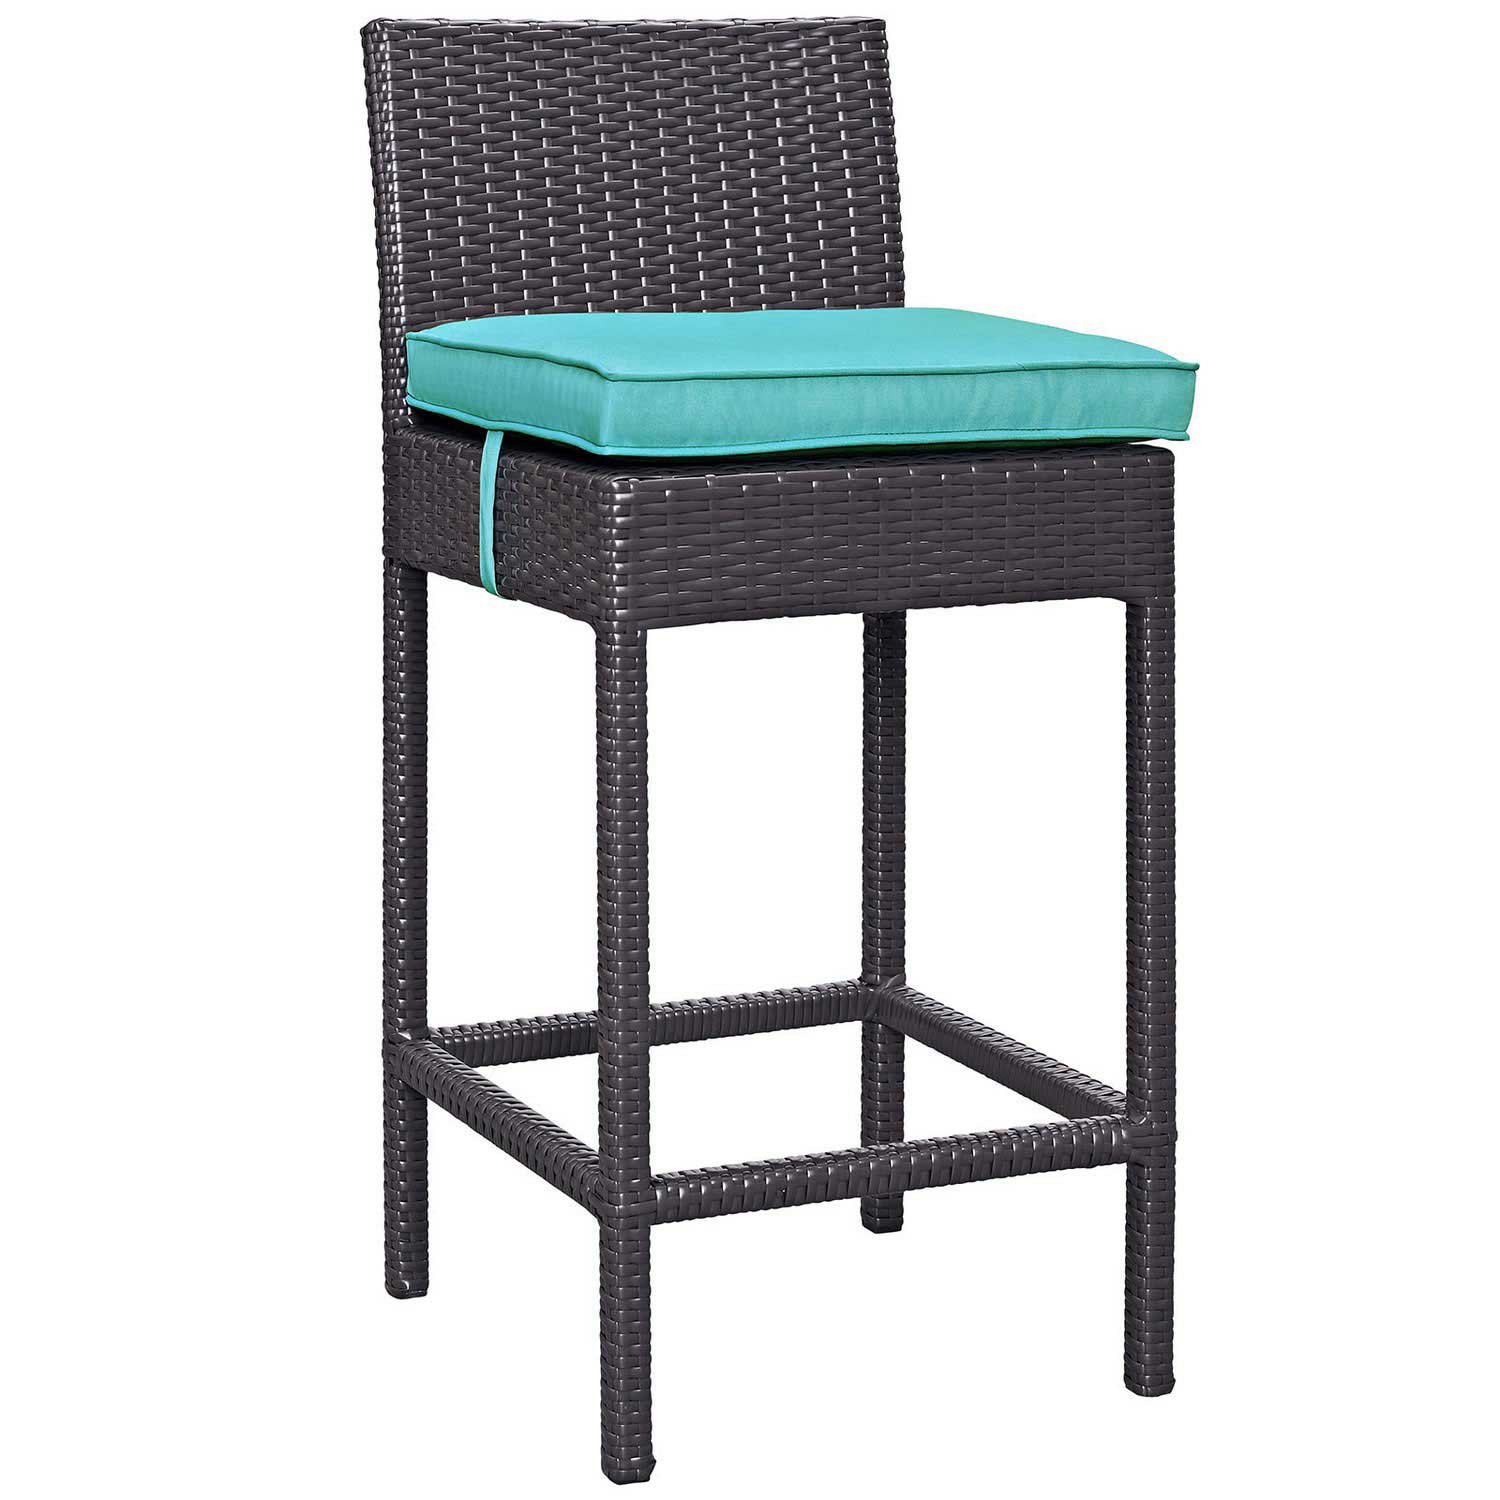 Modway Convene Outdoor Patio Fabric Bar Stool - Espresso Turquoise